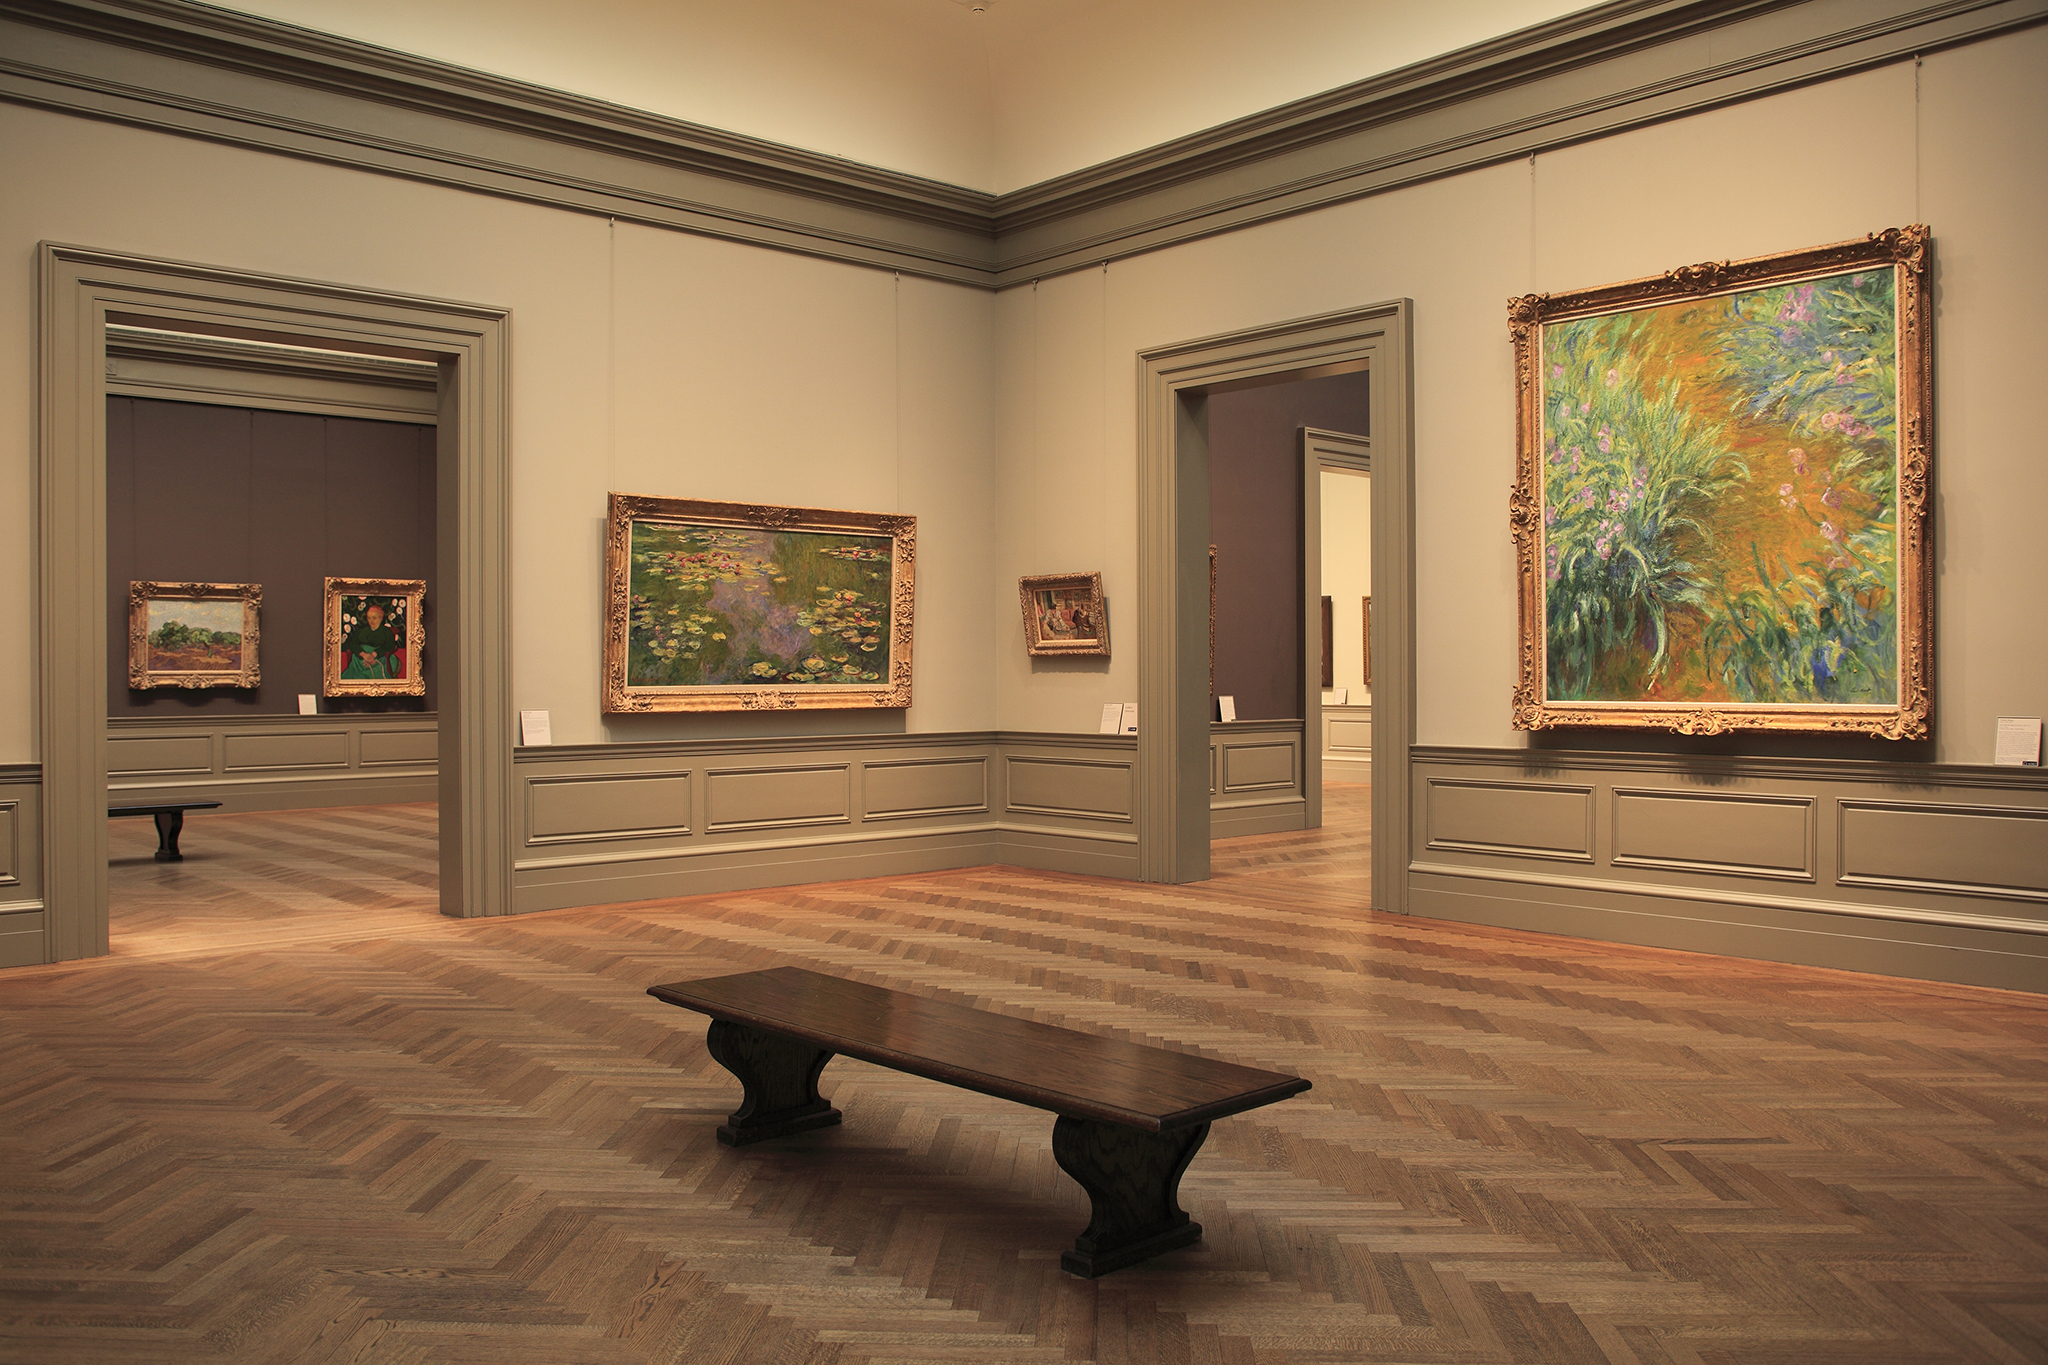 Best art museums in america including moma for Metropolitan museum of art exhibitions